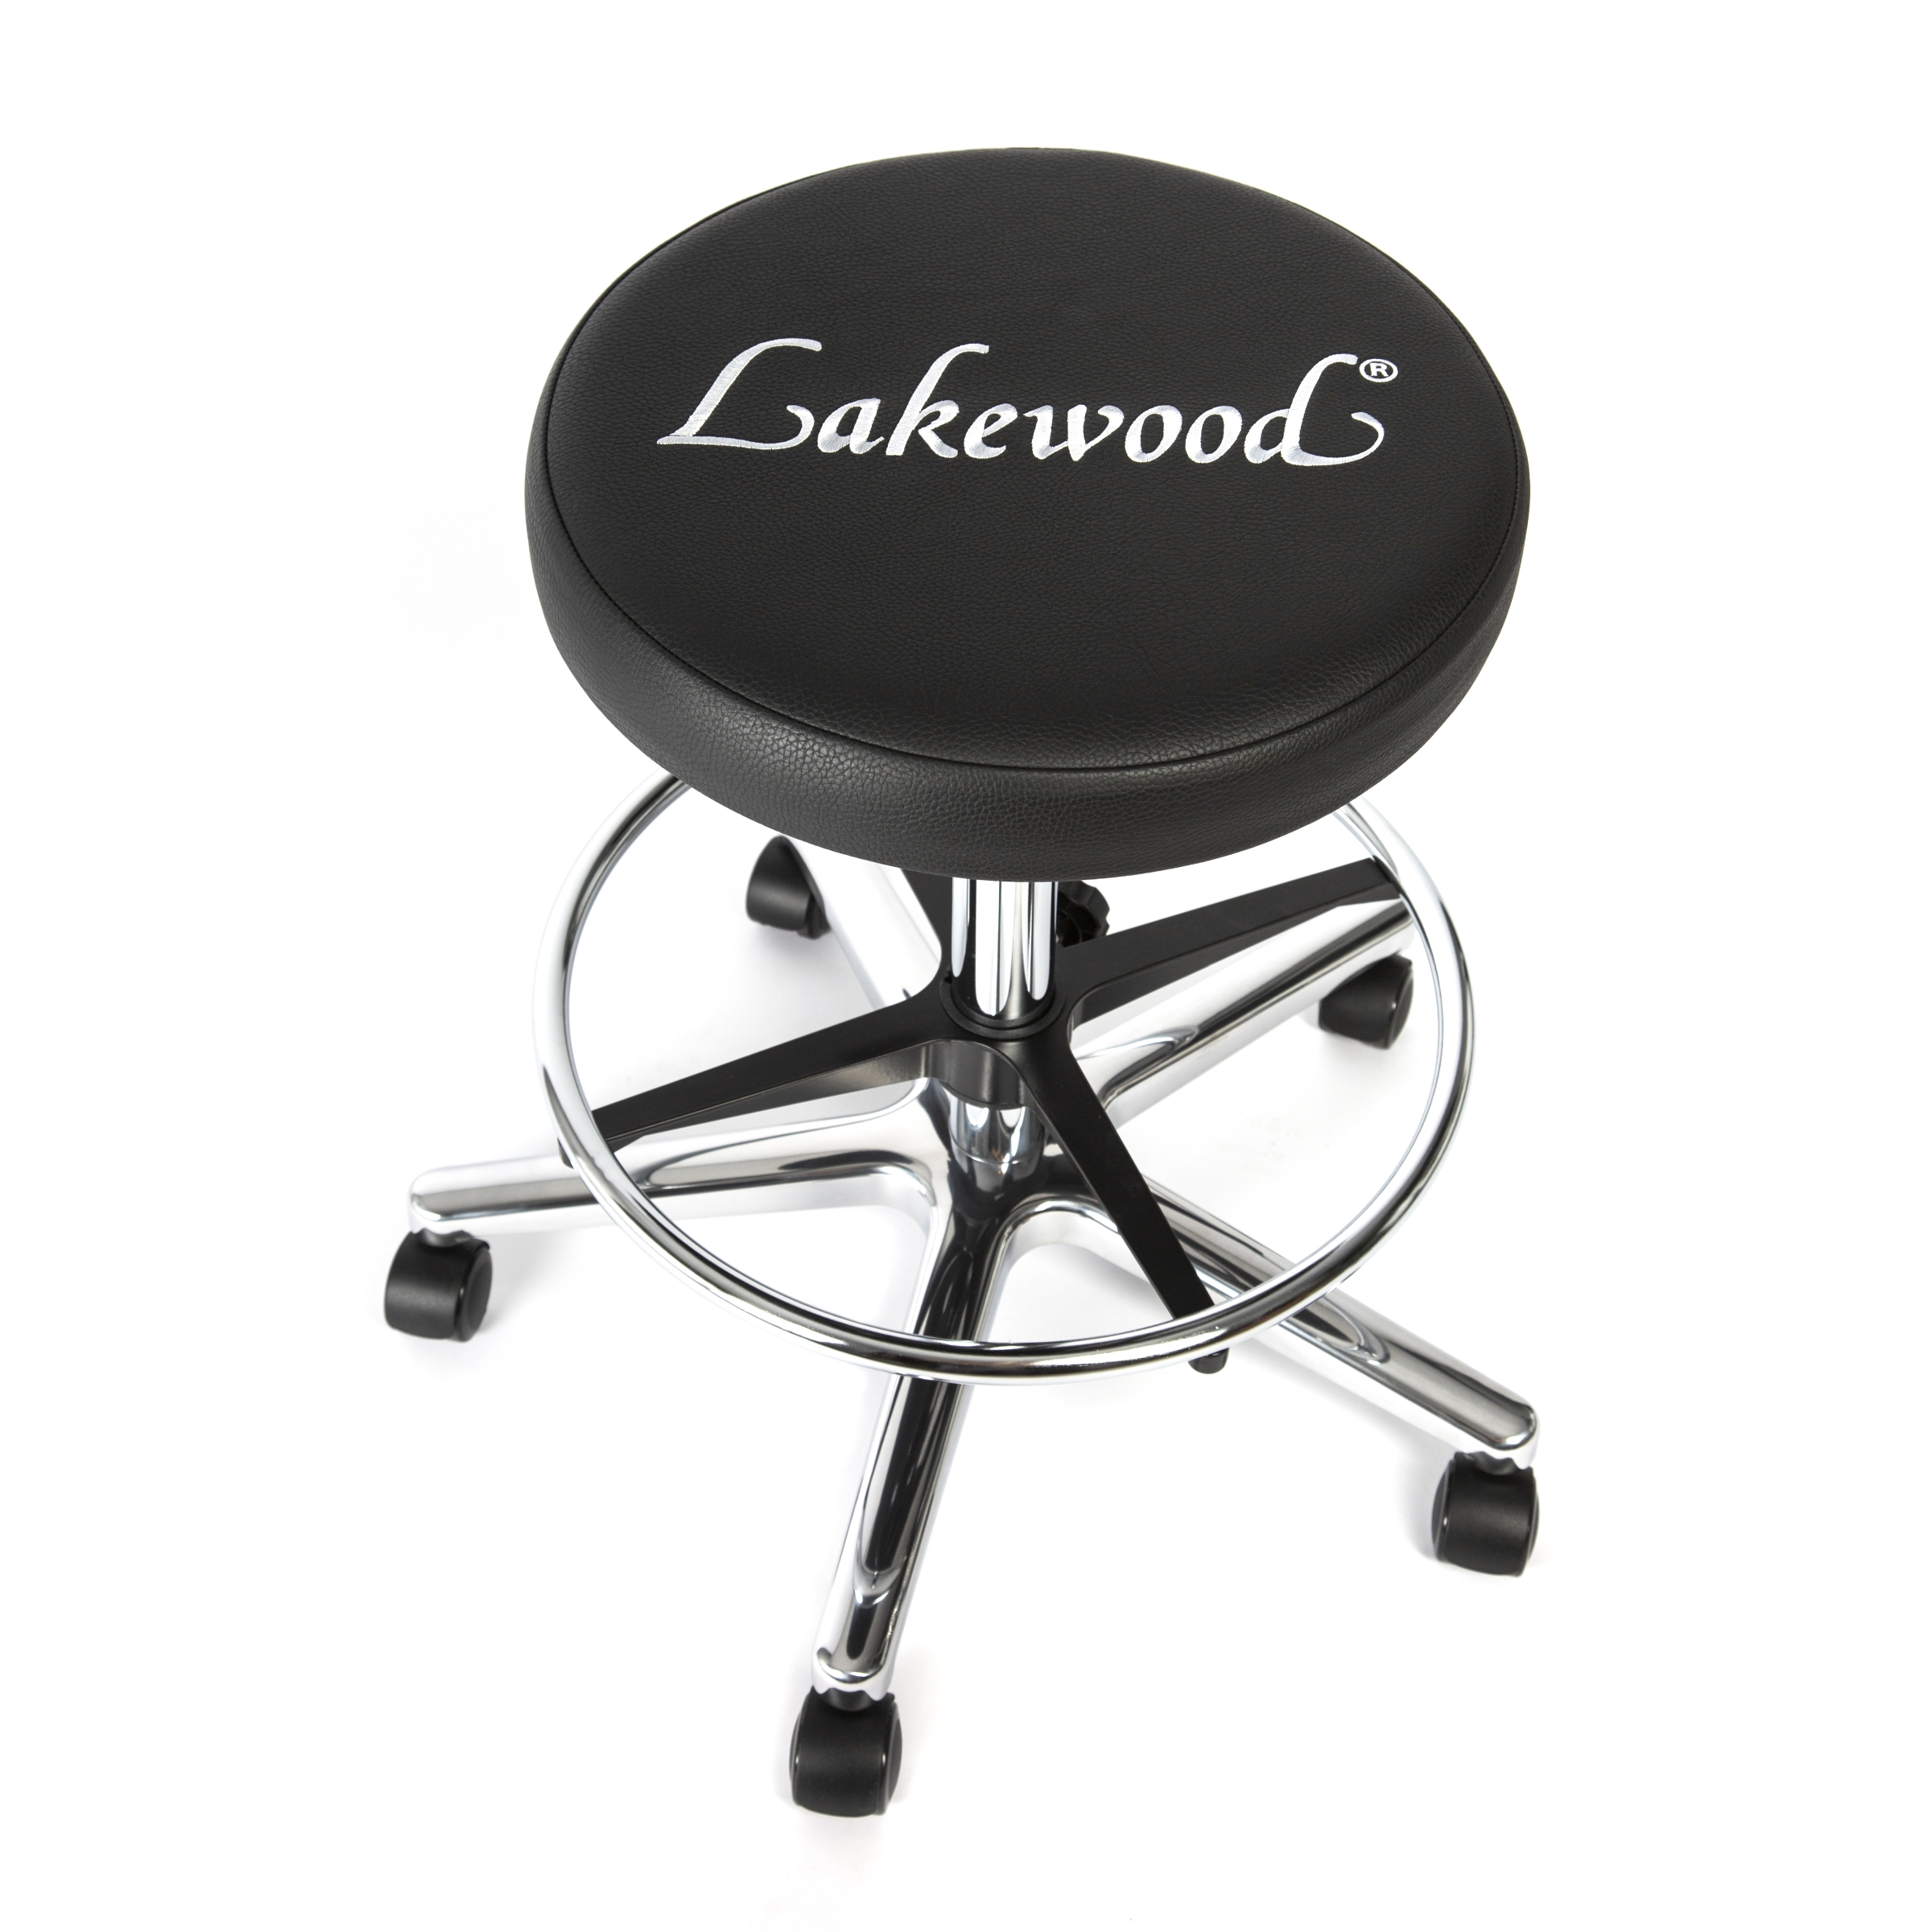 Lakewood Gitarrenhocker